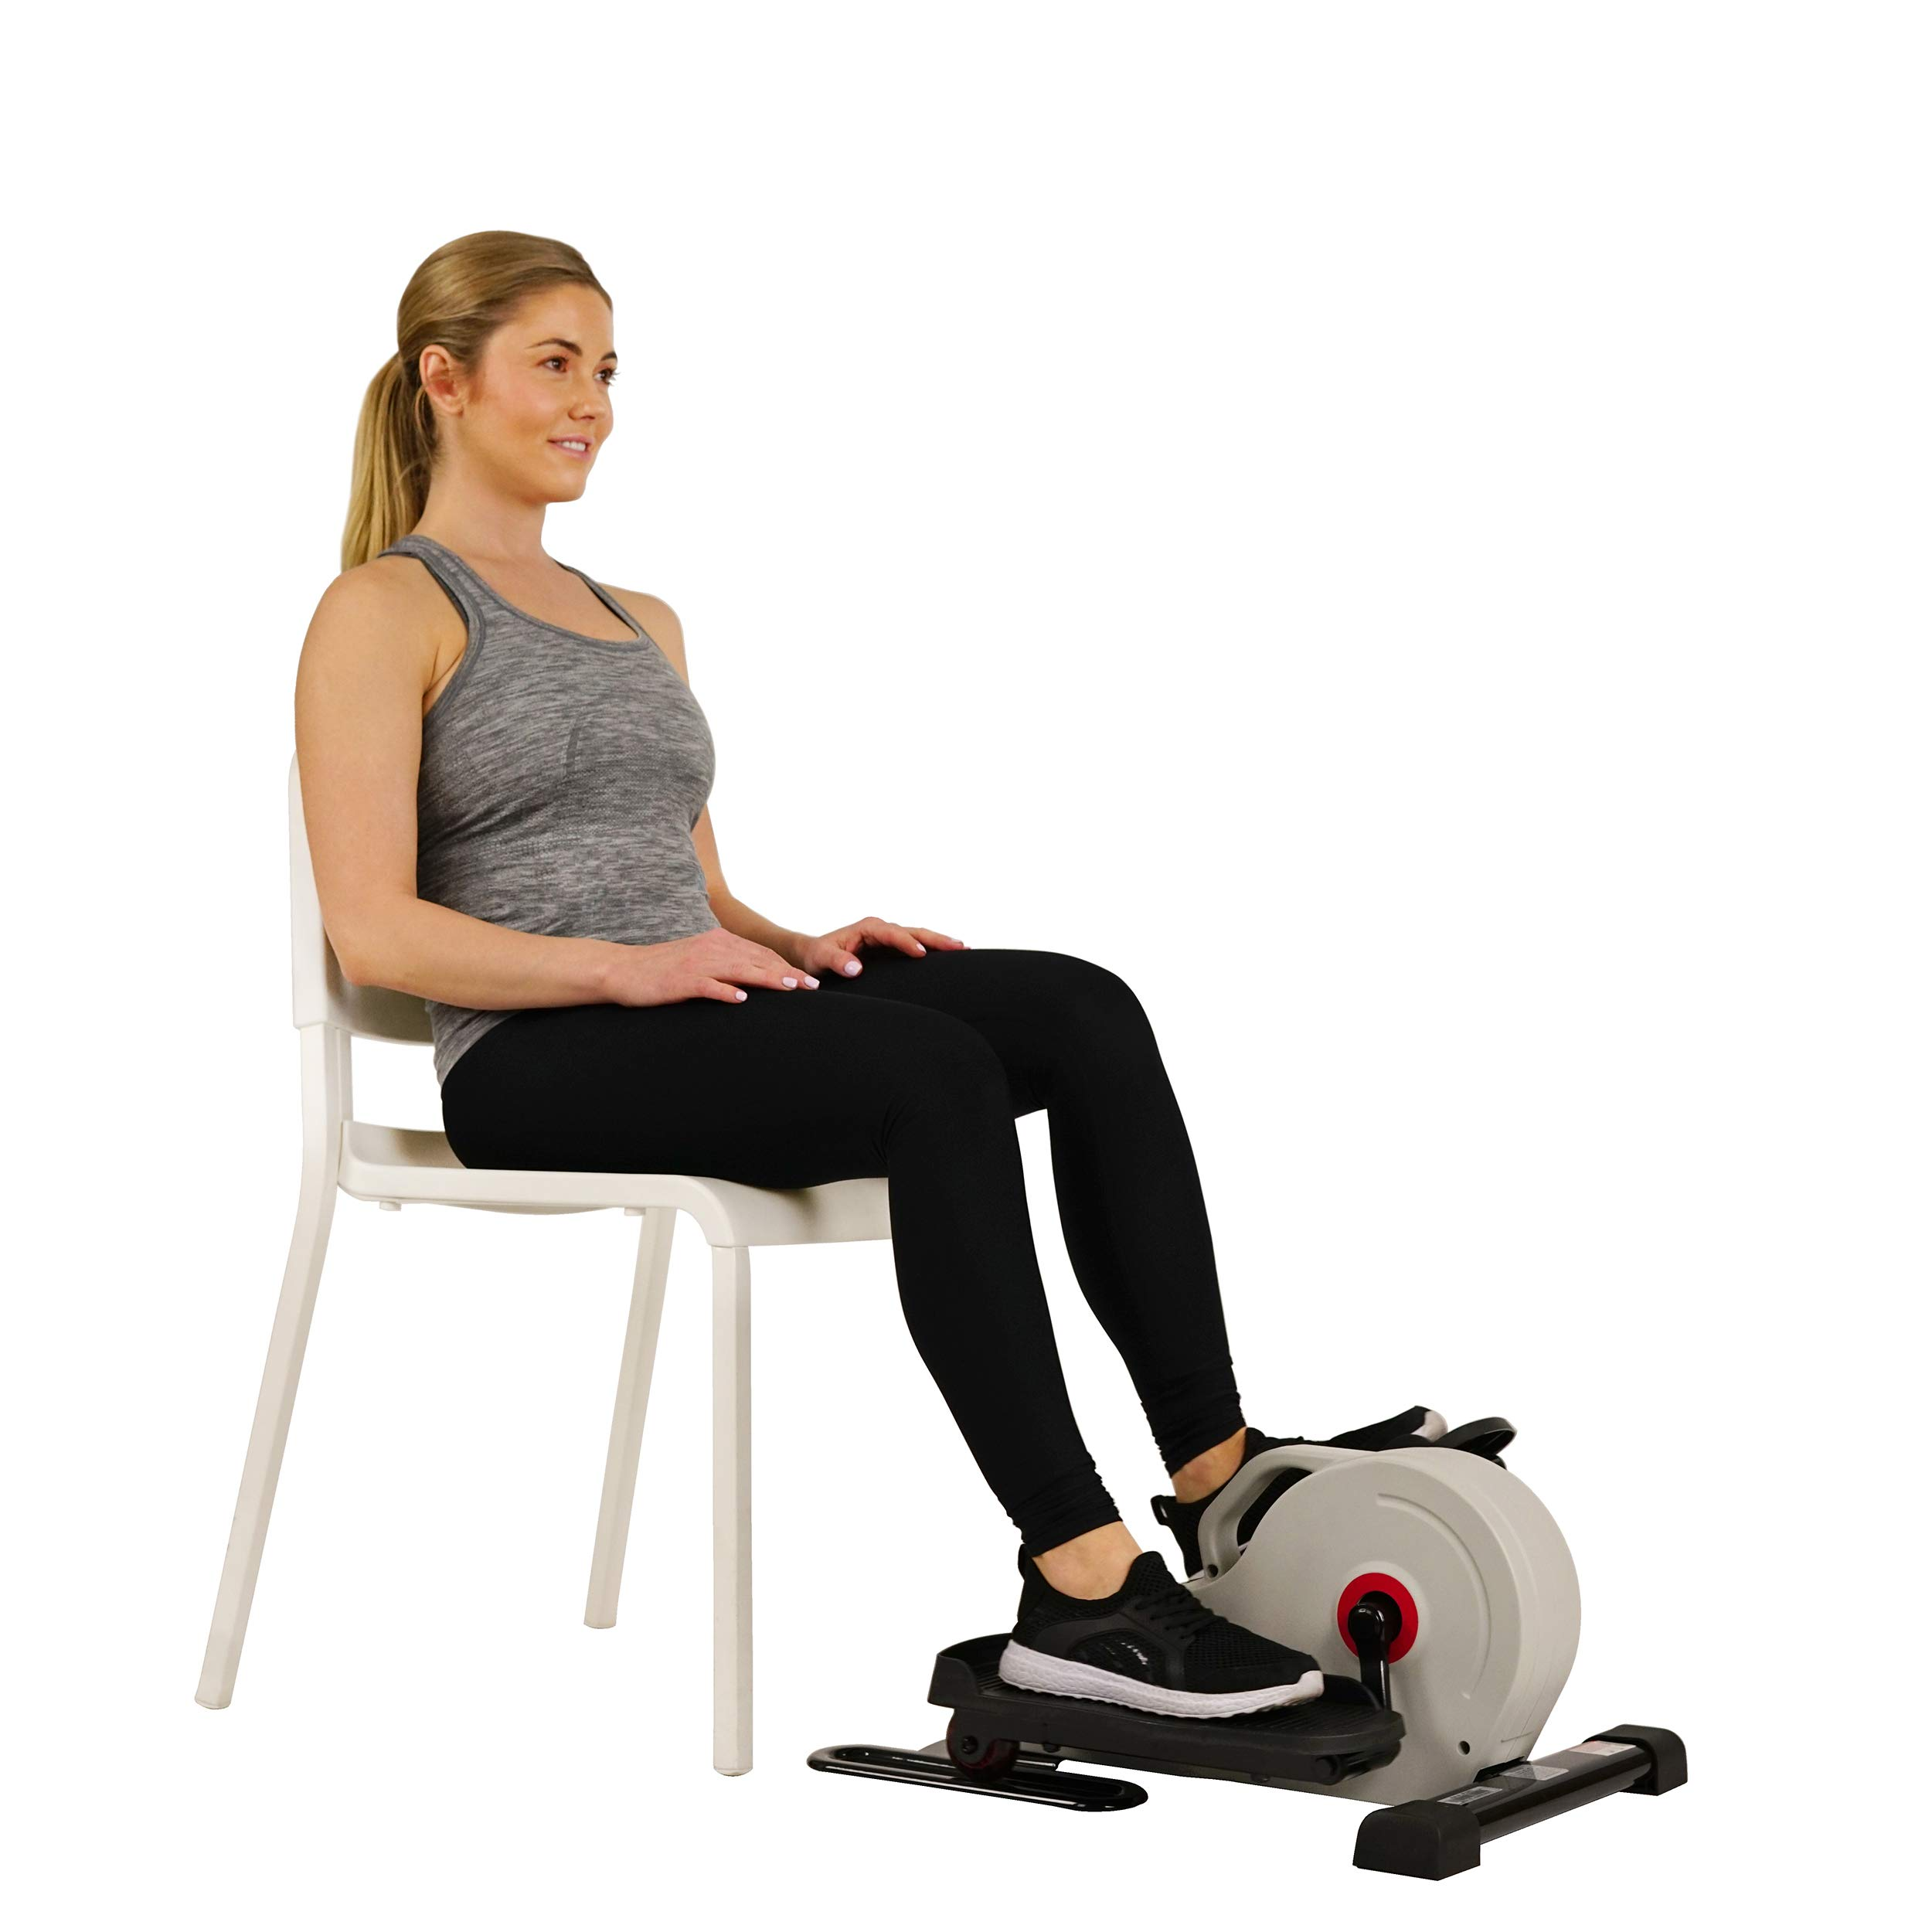 Sunny Health & Fitness Fully Assembled Magnetic Under Desk Elliptical - SF-E3872 by Sunny Health & Fitness